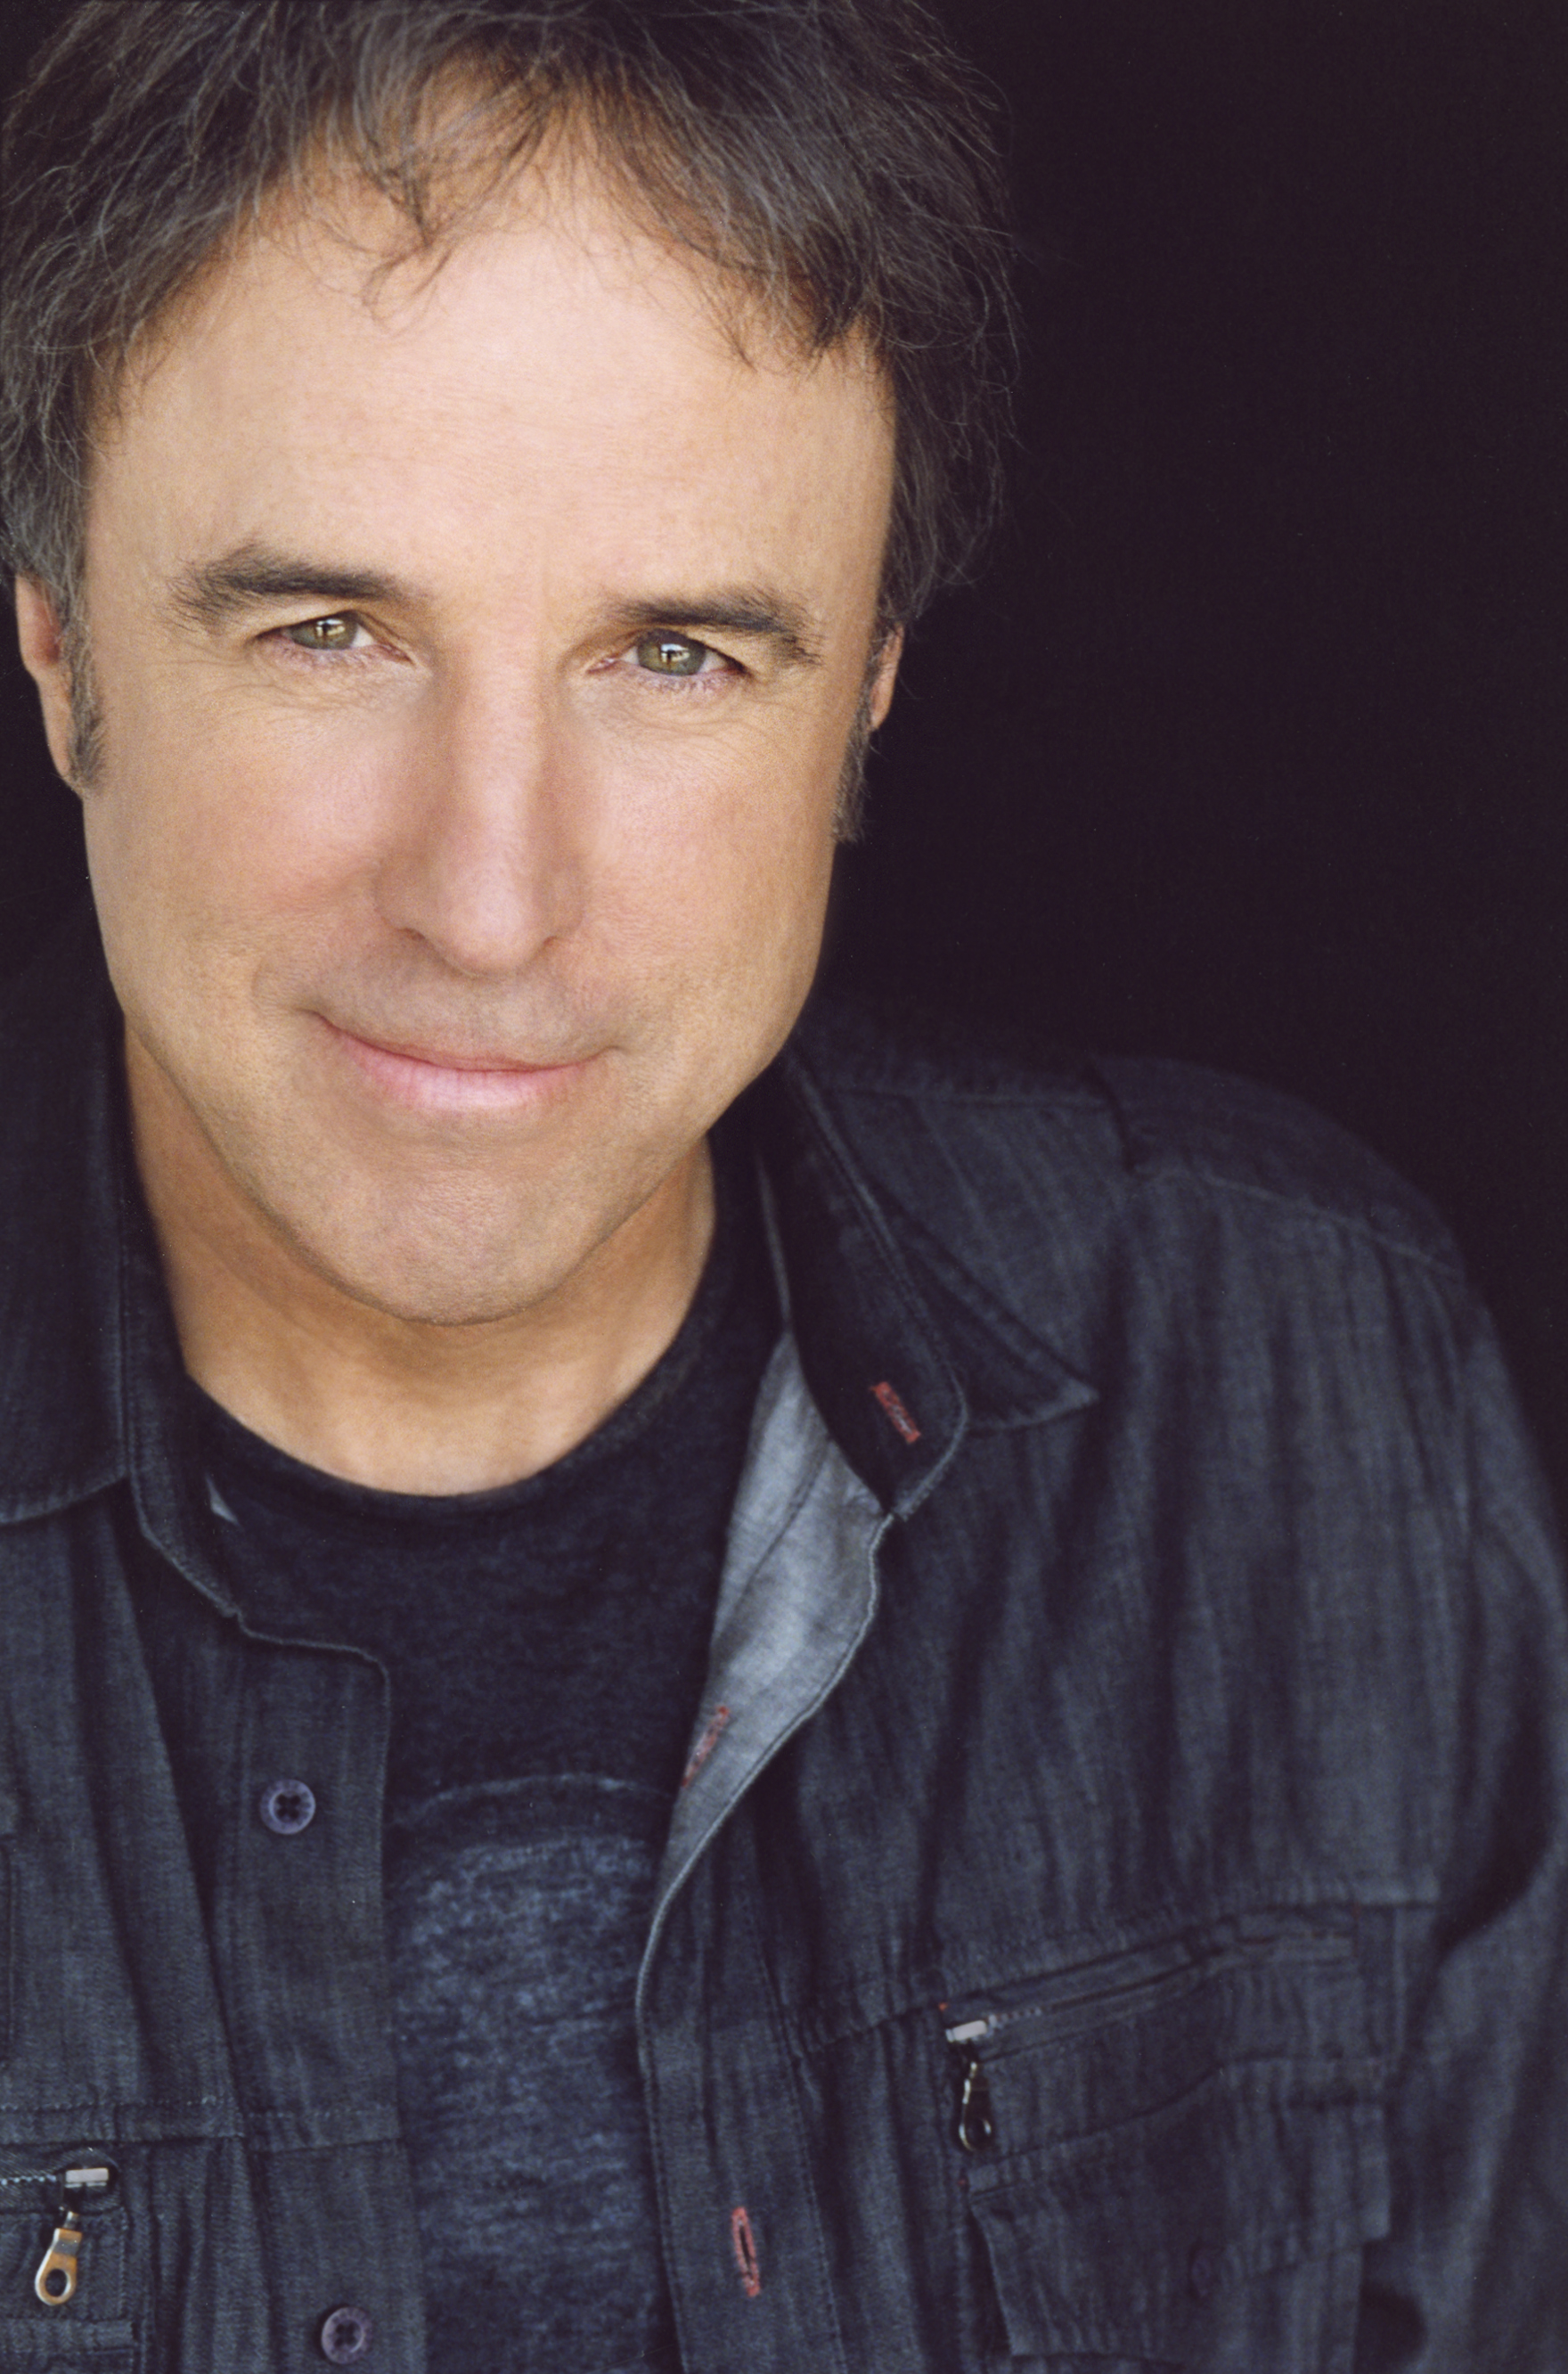 Comedian and film star Kevin Nealon will have people laughing in the aisles this weekend at the Pittsburgh Improv.